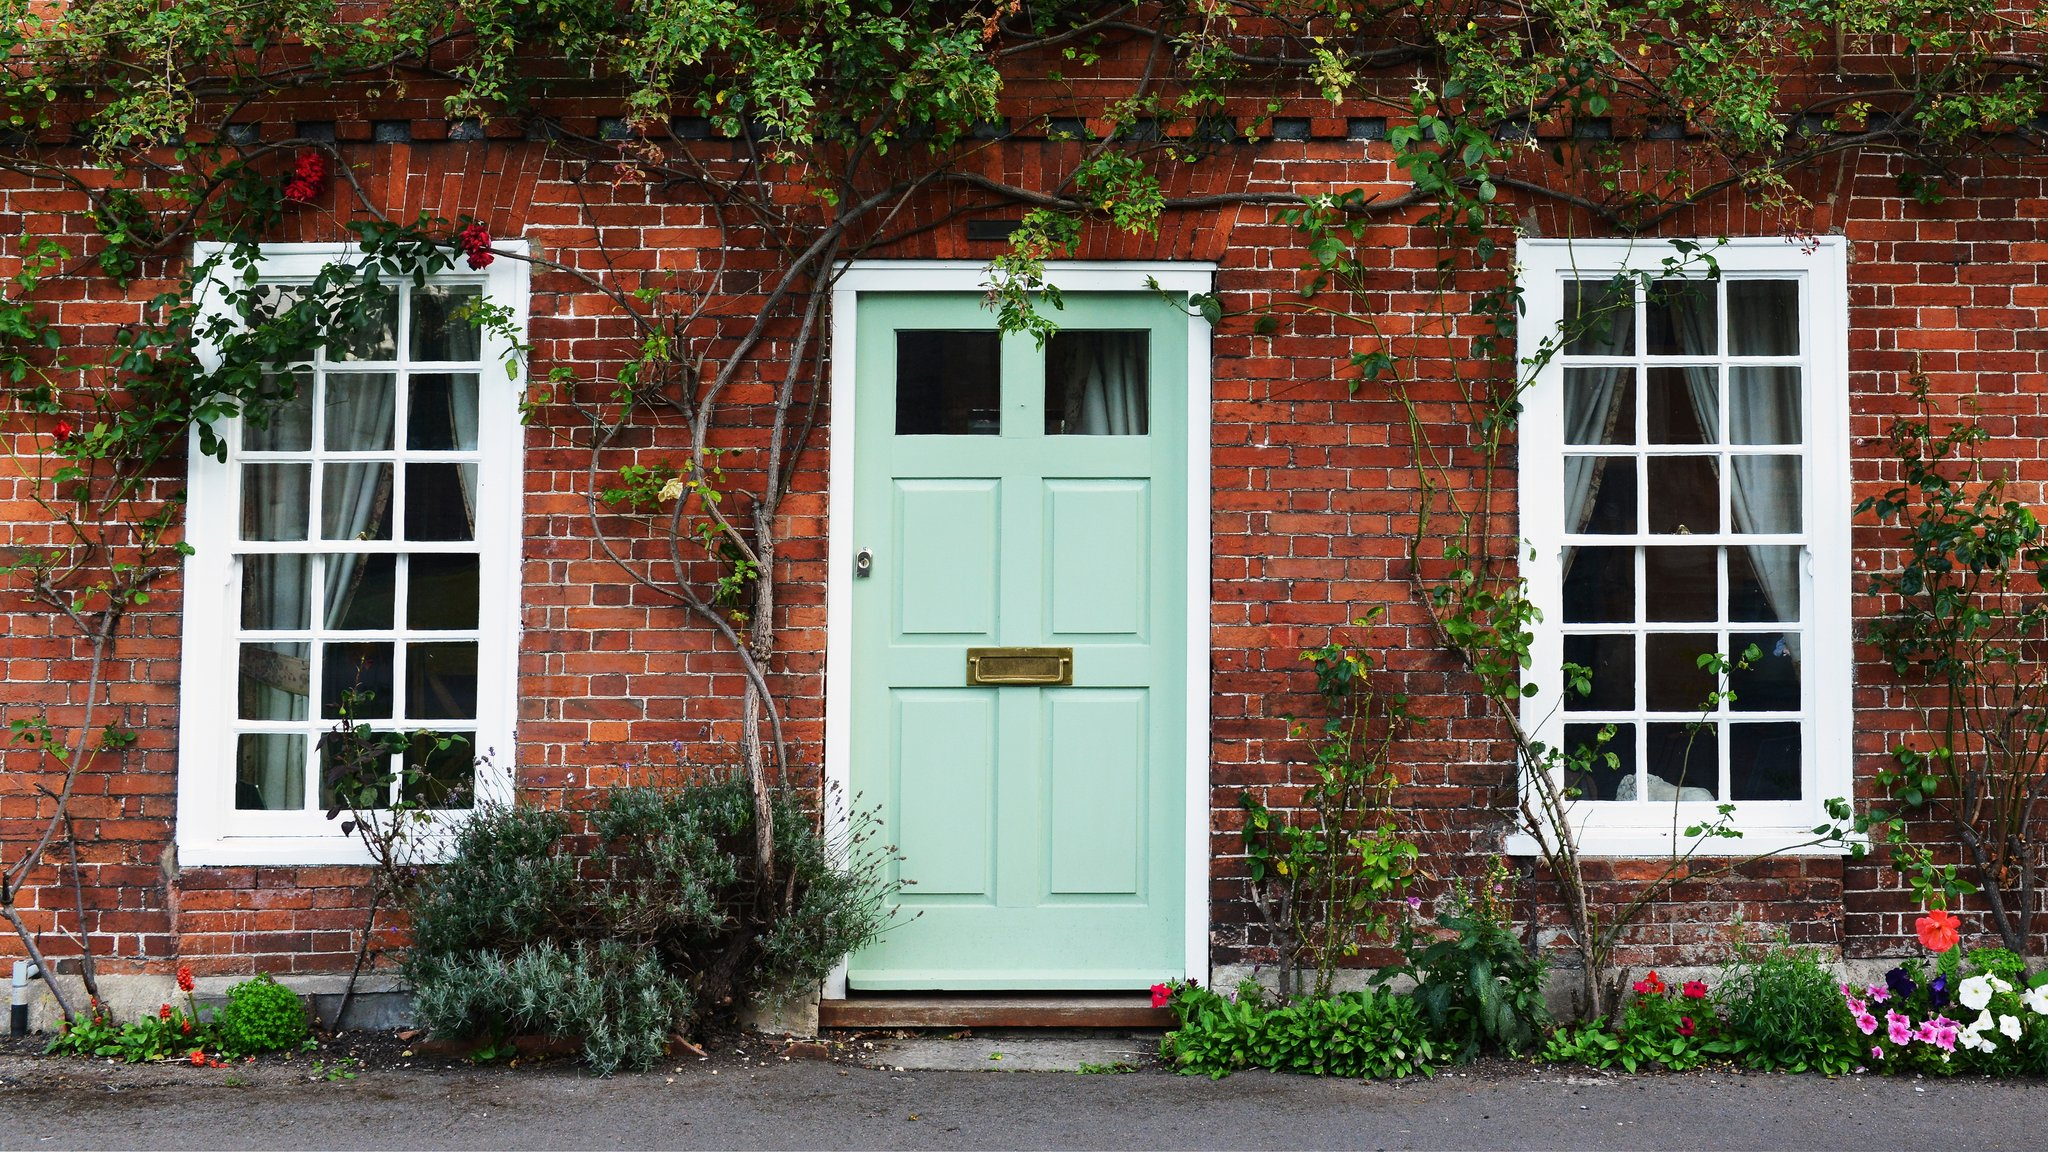 Our Top 7 Tips to Boost your Curb Appeal